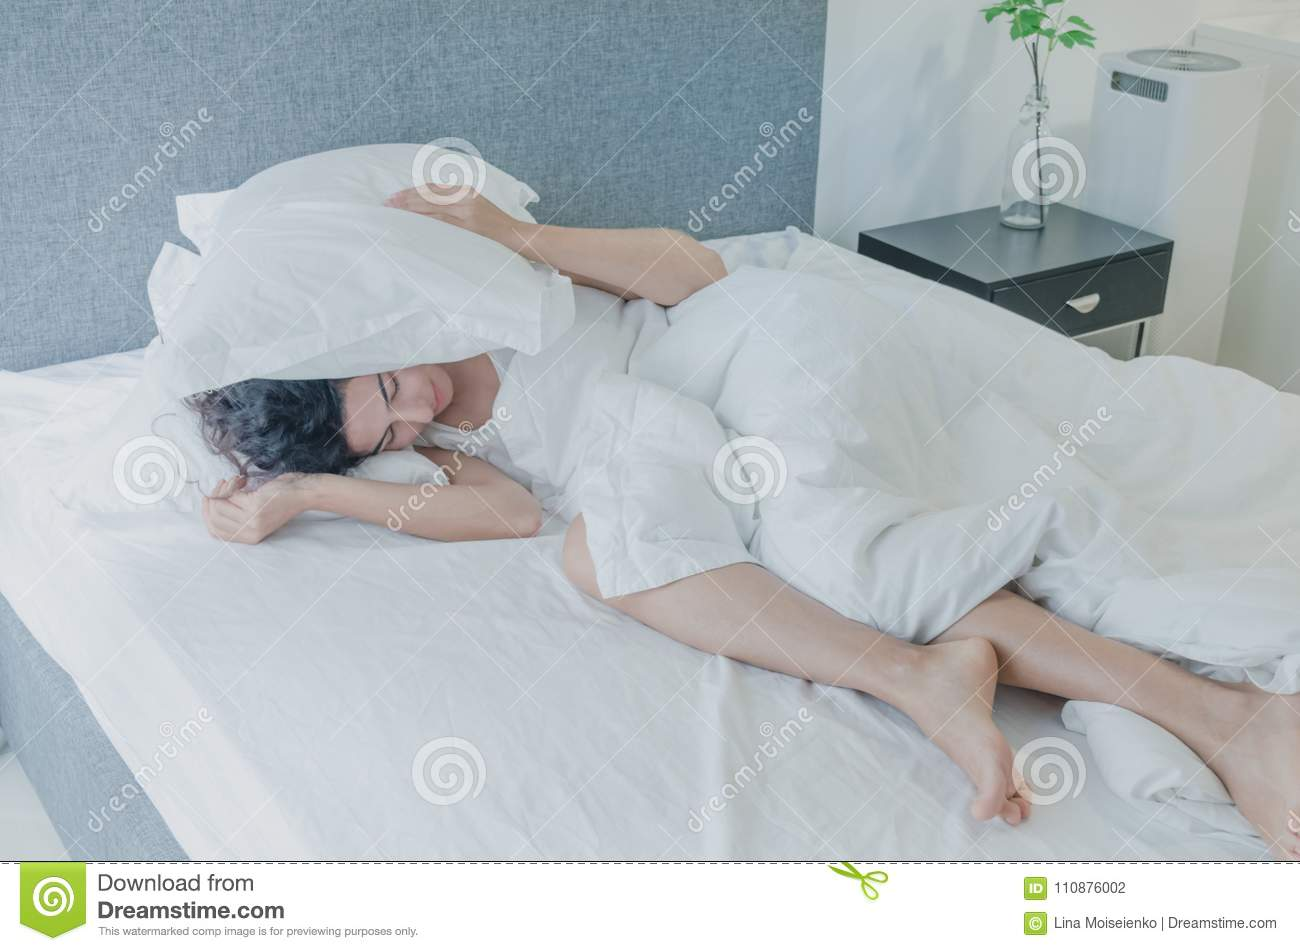 Young caucasian woman with black hair sleeps funny in bed, covering her head with pillow.